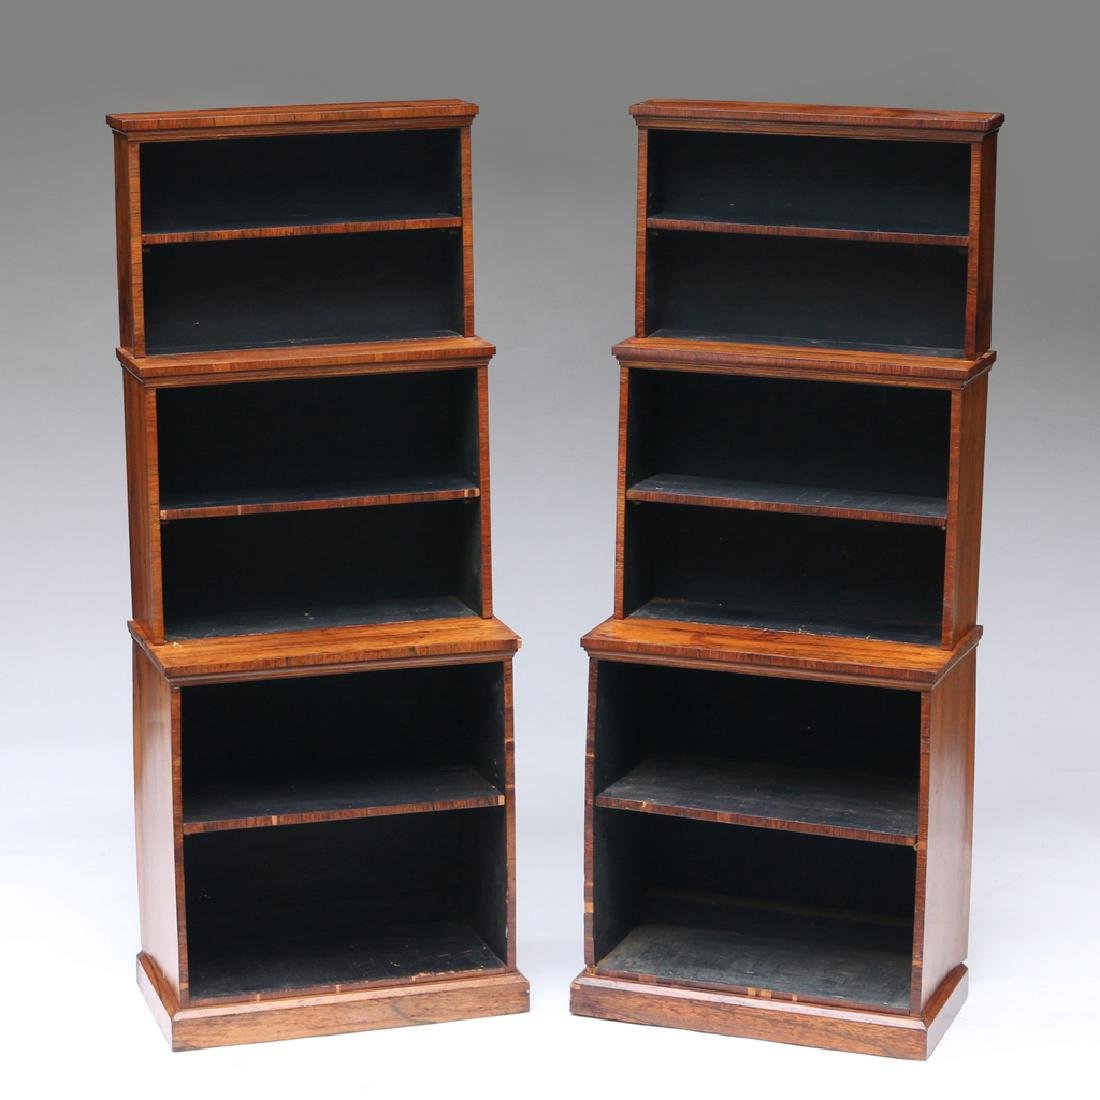 PAIR OF REGENCY ROSEWOOD TIERED BOOKCASES